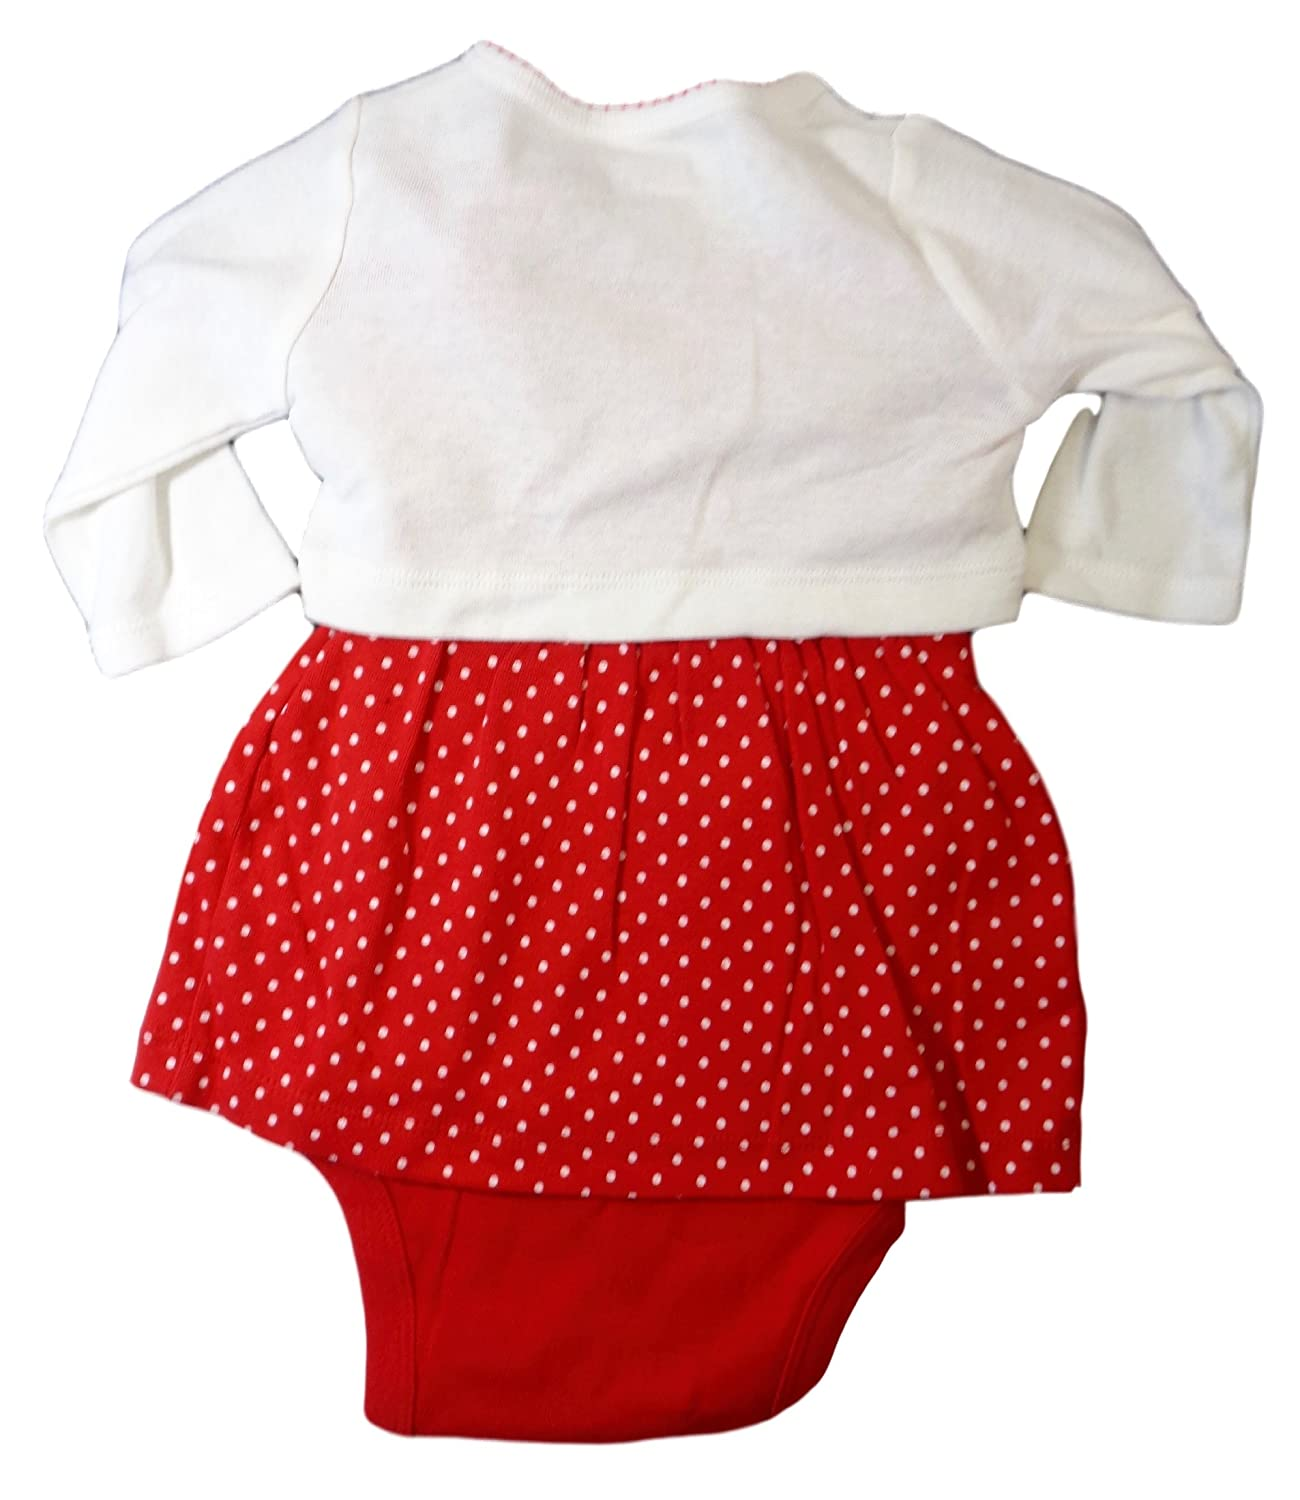 05dc19f29 Amazon.com: Just One You by Carter's Girls' 2 Piece Santa Dress Set - (Baby  0-24 Months) (3 Months): Clothing